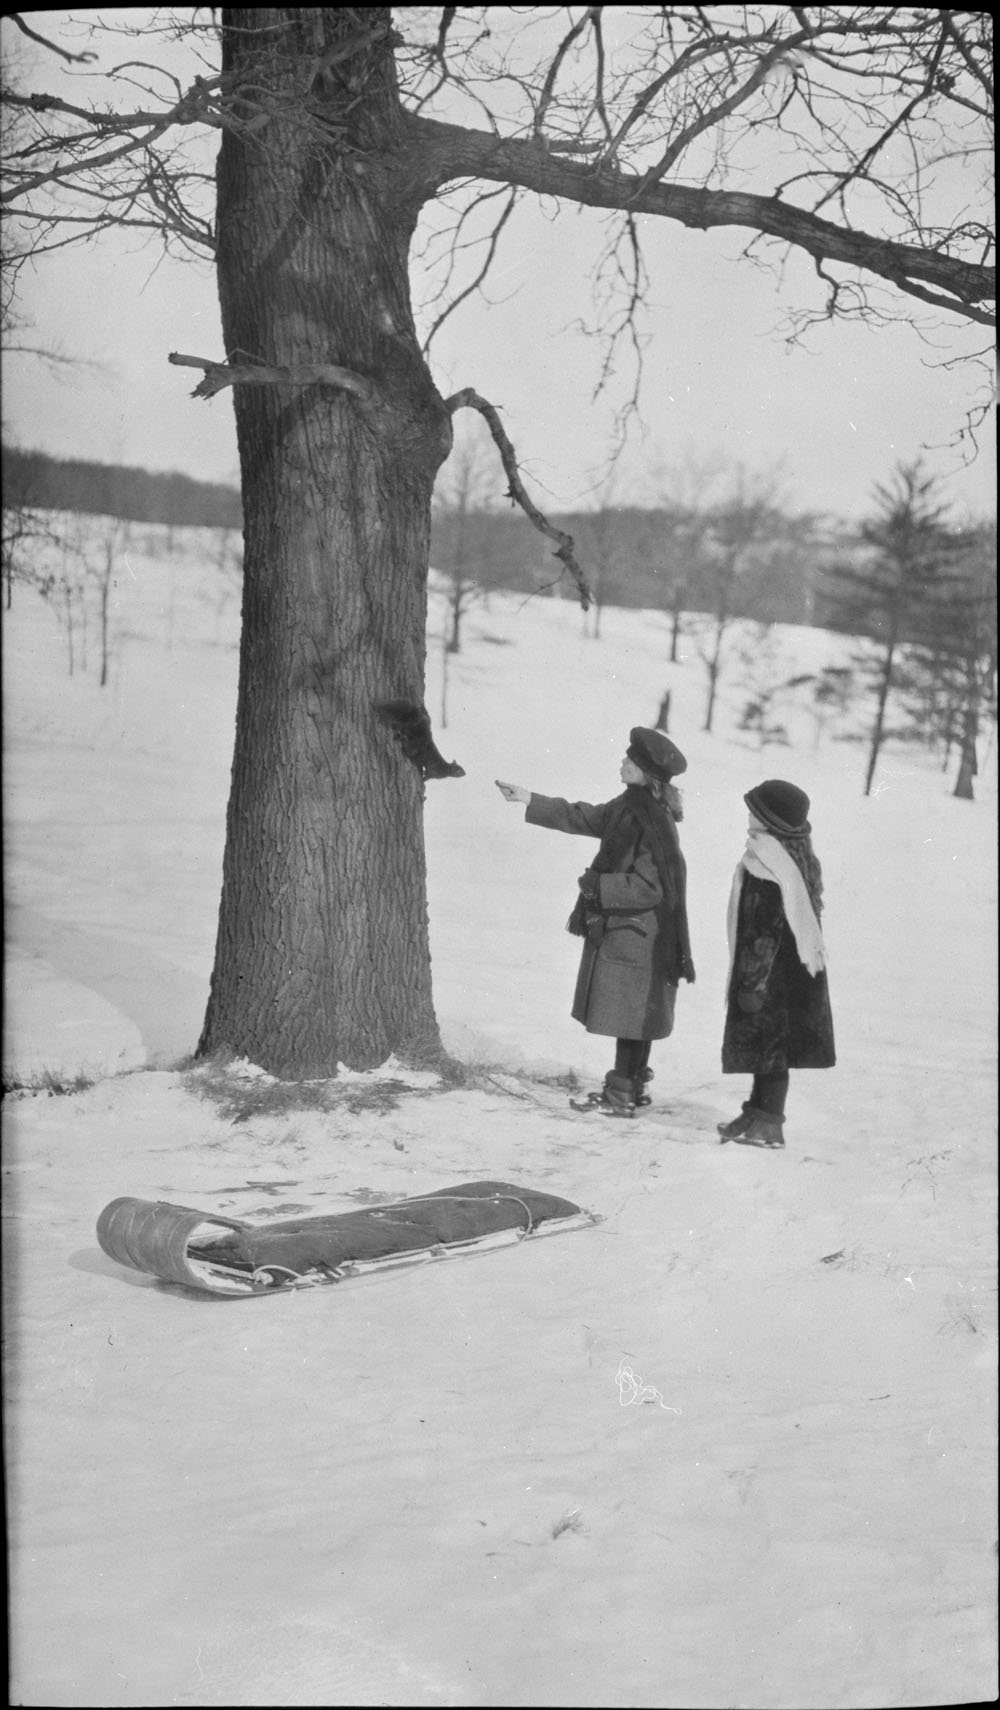 A black-and-white photograph of two girls standing next to a tree in winter. One of the girls feeds a squirrel clinging to the trunk.